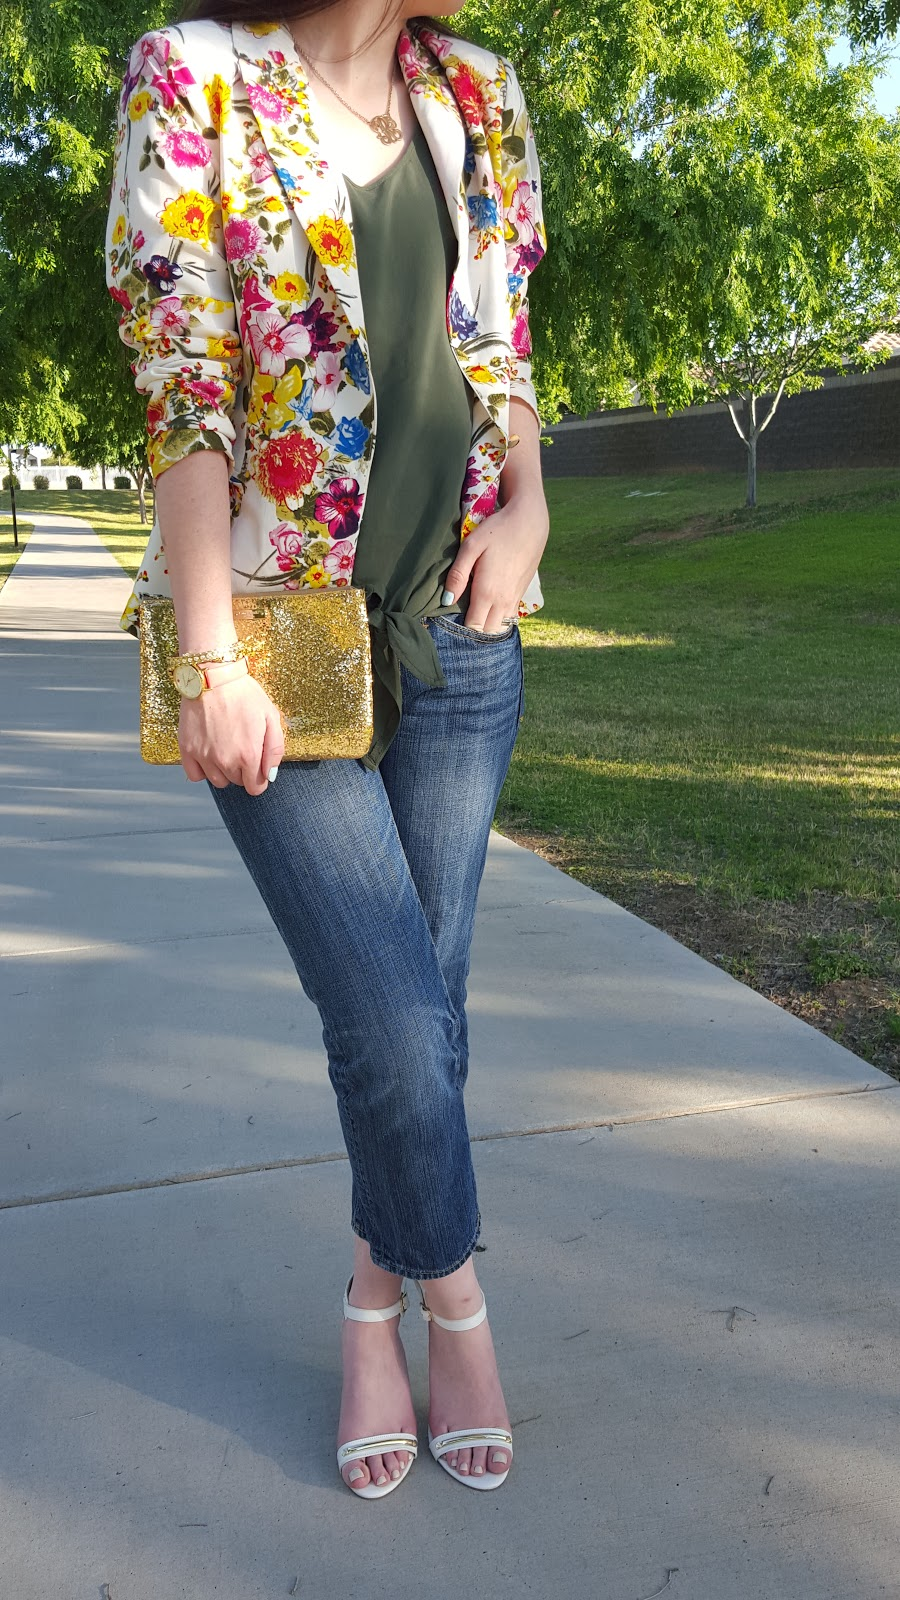 perfect semi casual outfit for Spring- floral print blazer, jeans, and heeled sandals